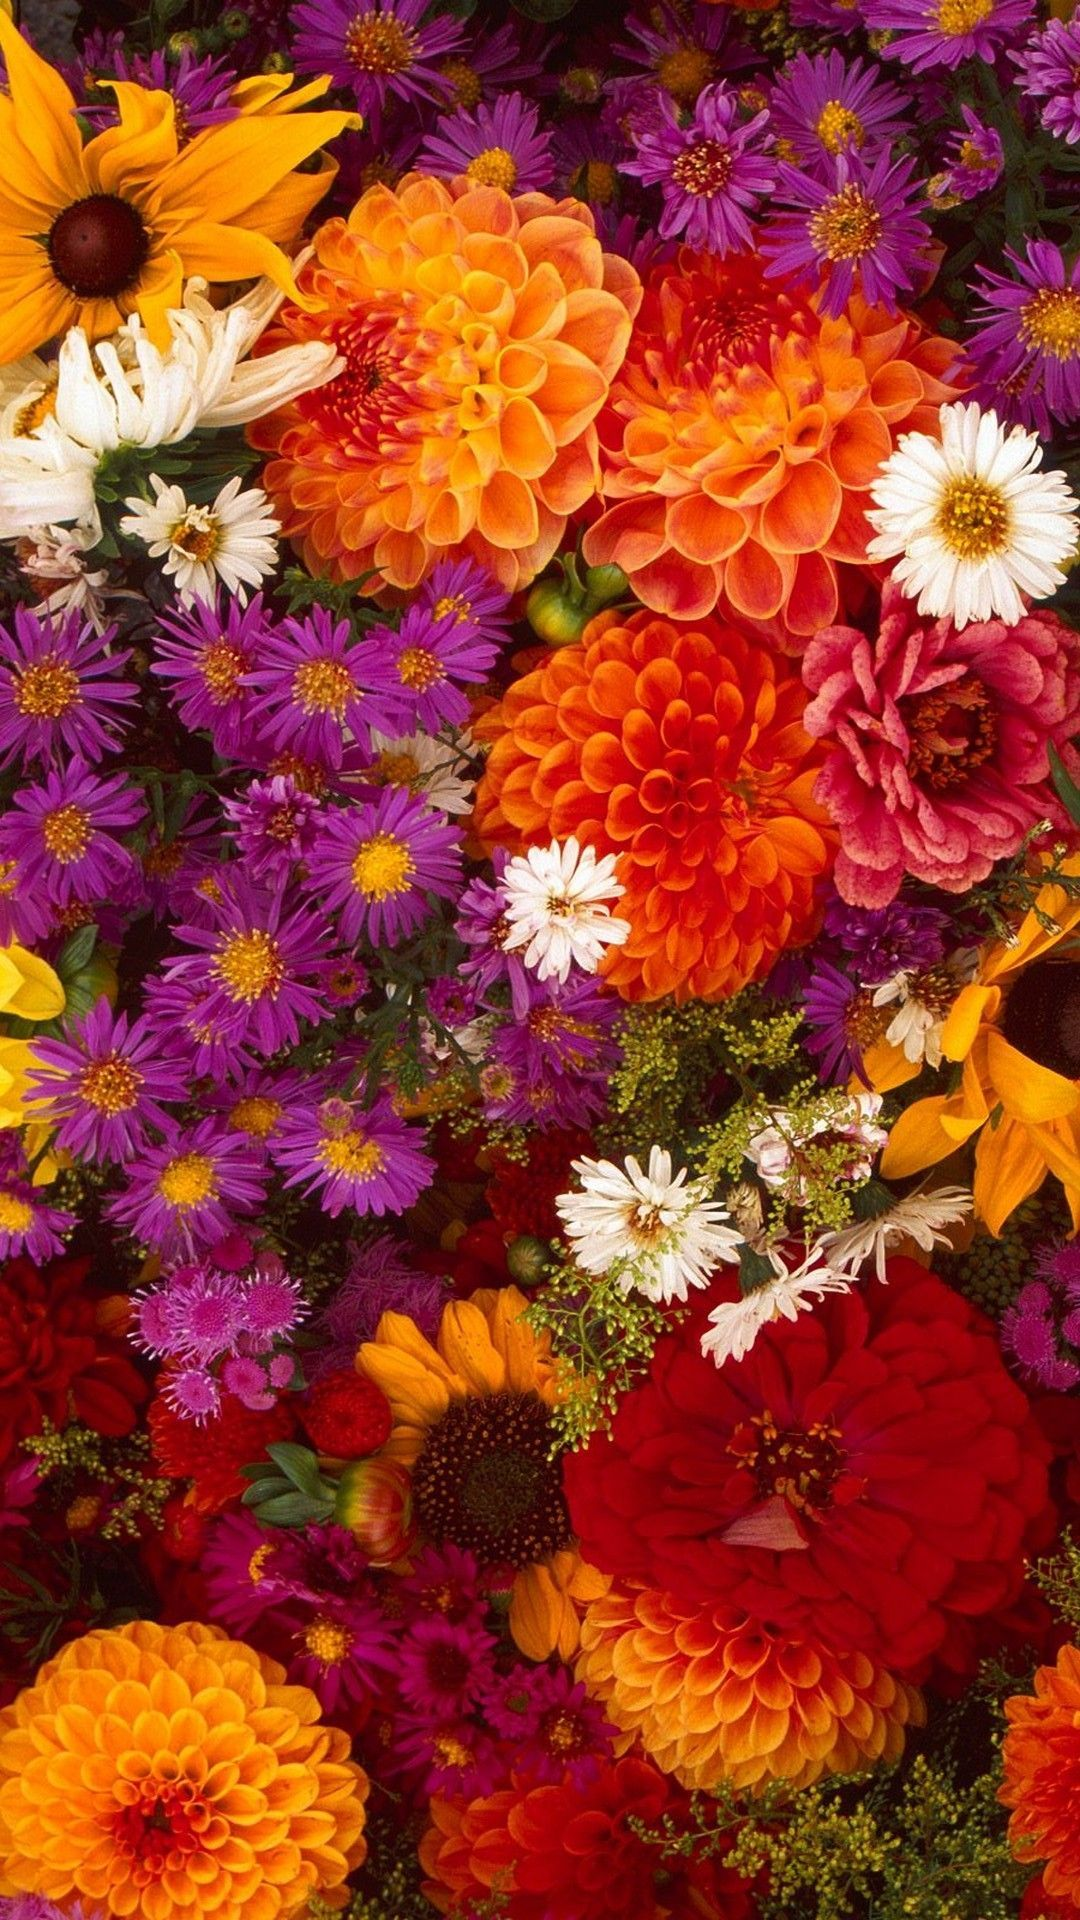 Flower Android Wallpapers Top Free Flower Android Backgrounds Wallpaperaccess